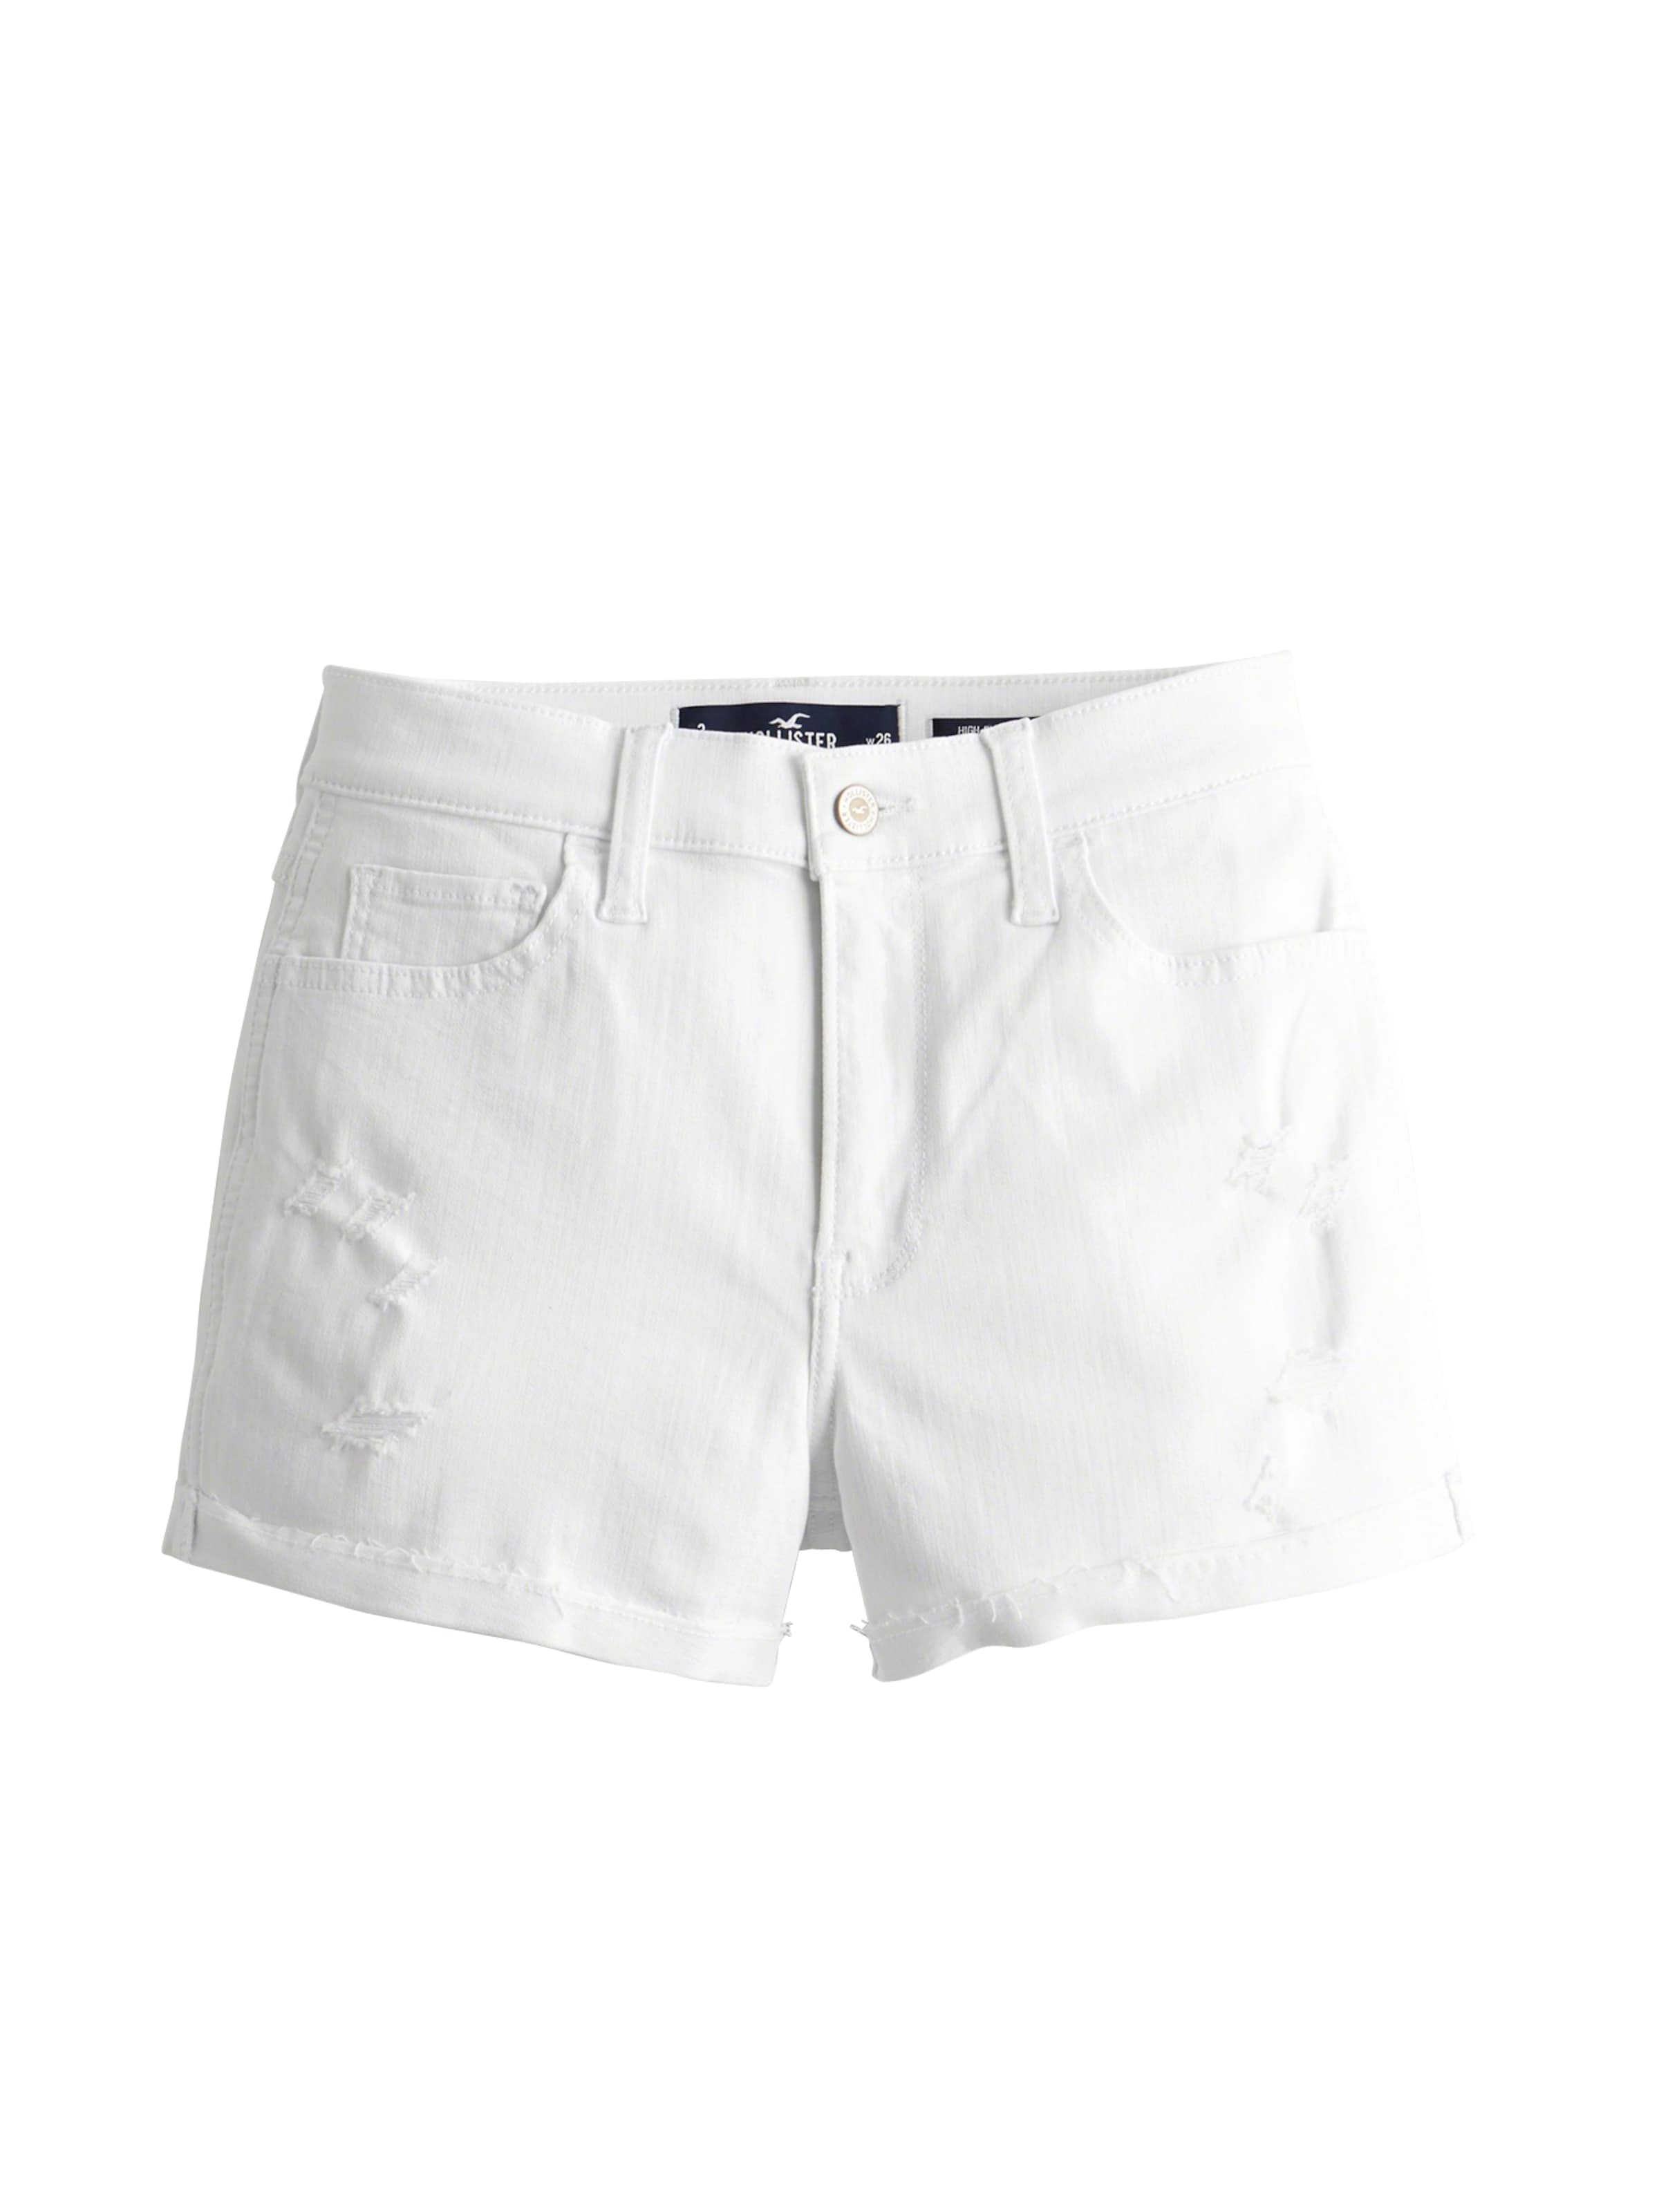 In 3 Jeans As white Hollister Rcc Hr 'sb19 Short' Dst Denim White OXZwPkiTu